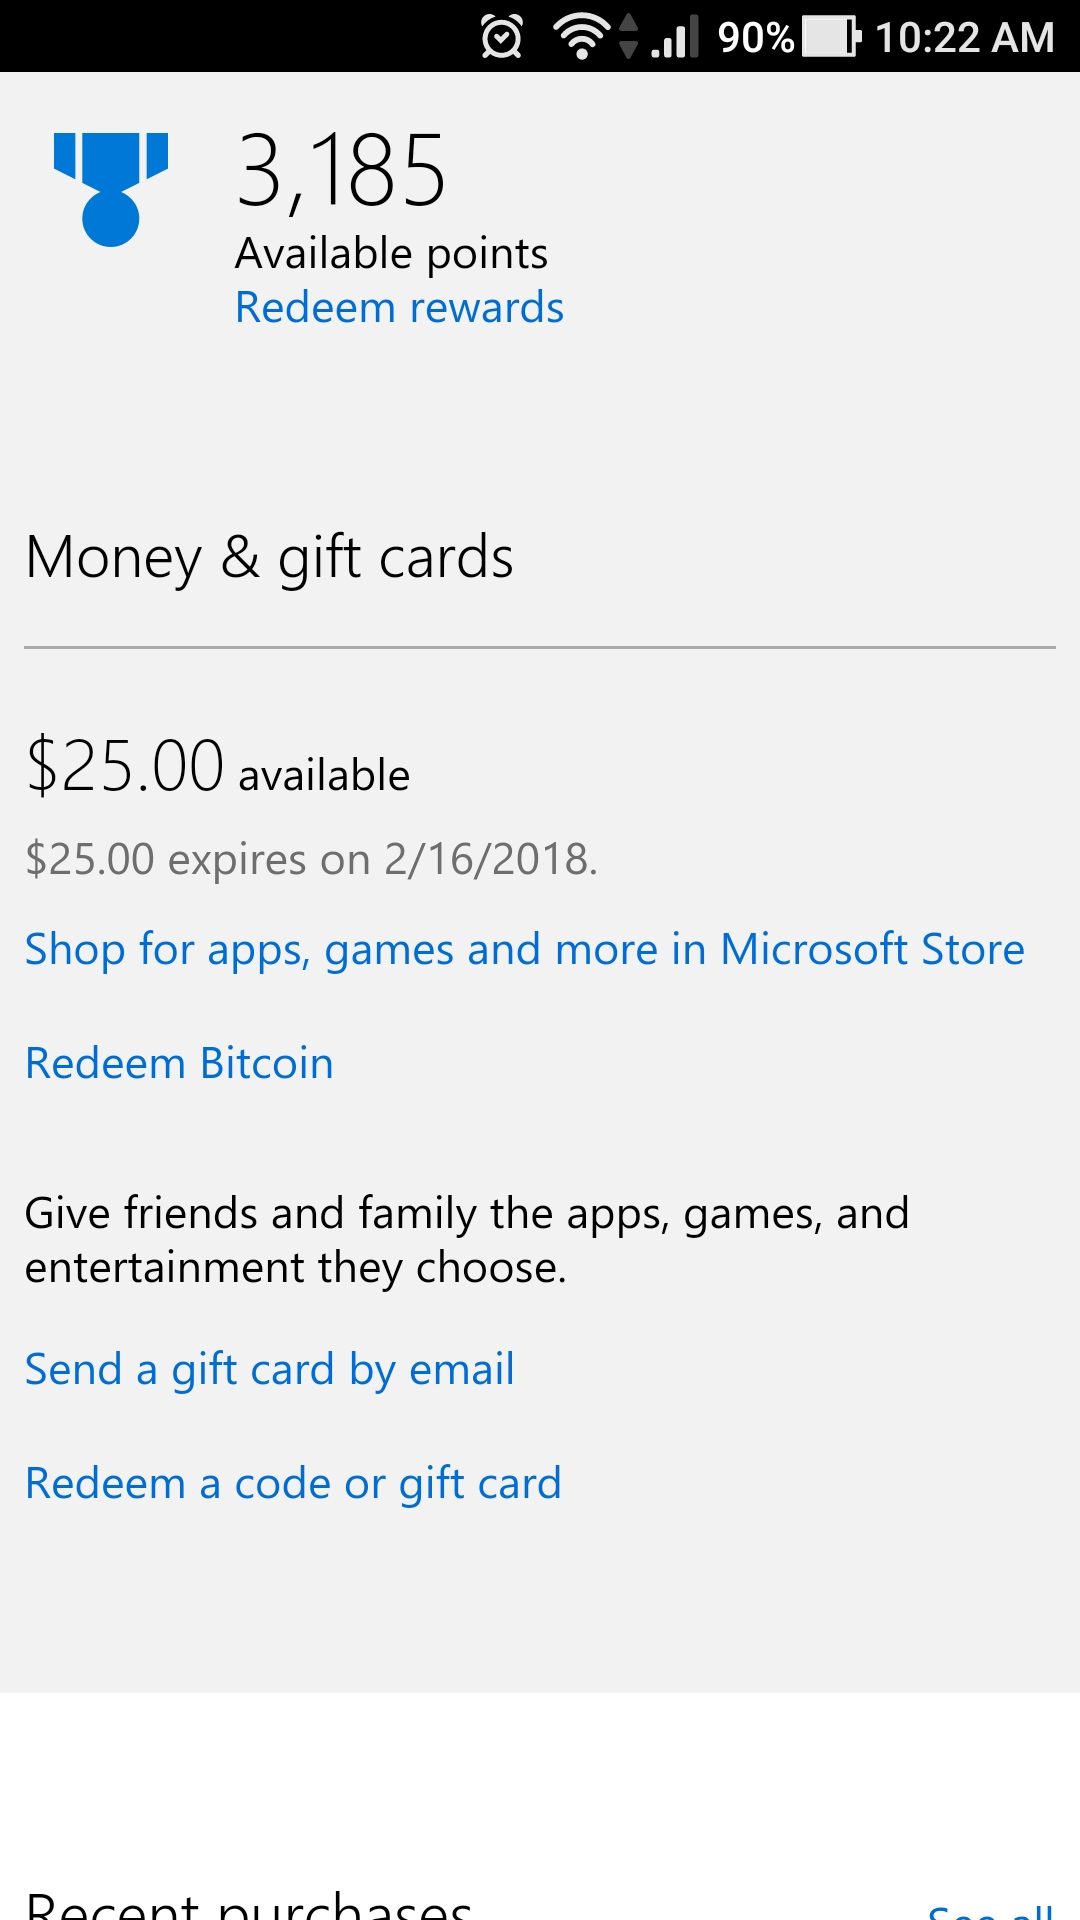 Email Gift Vouchers I Don T Know Why But Xbox Sent Me Two 10 And One 5 Gift Cards